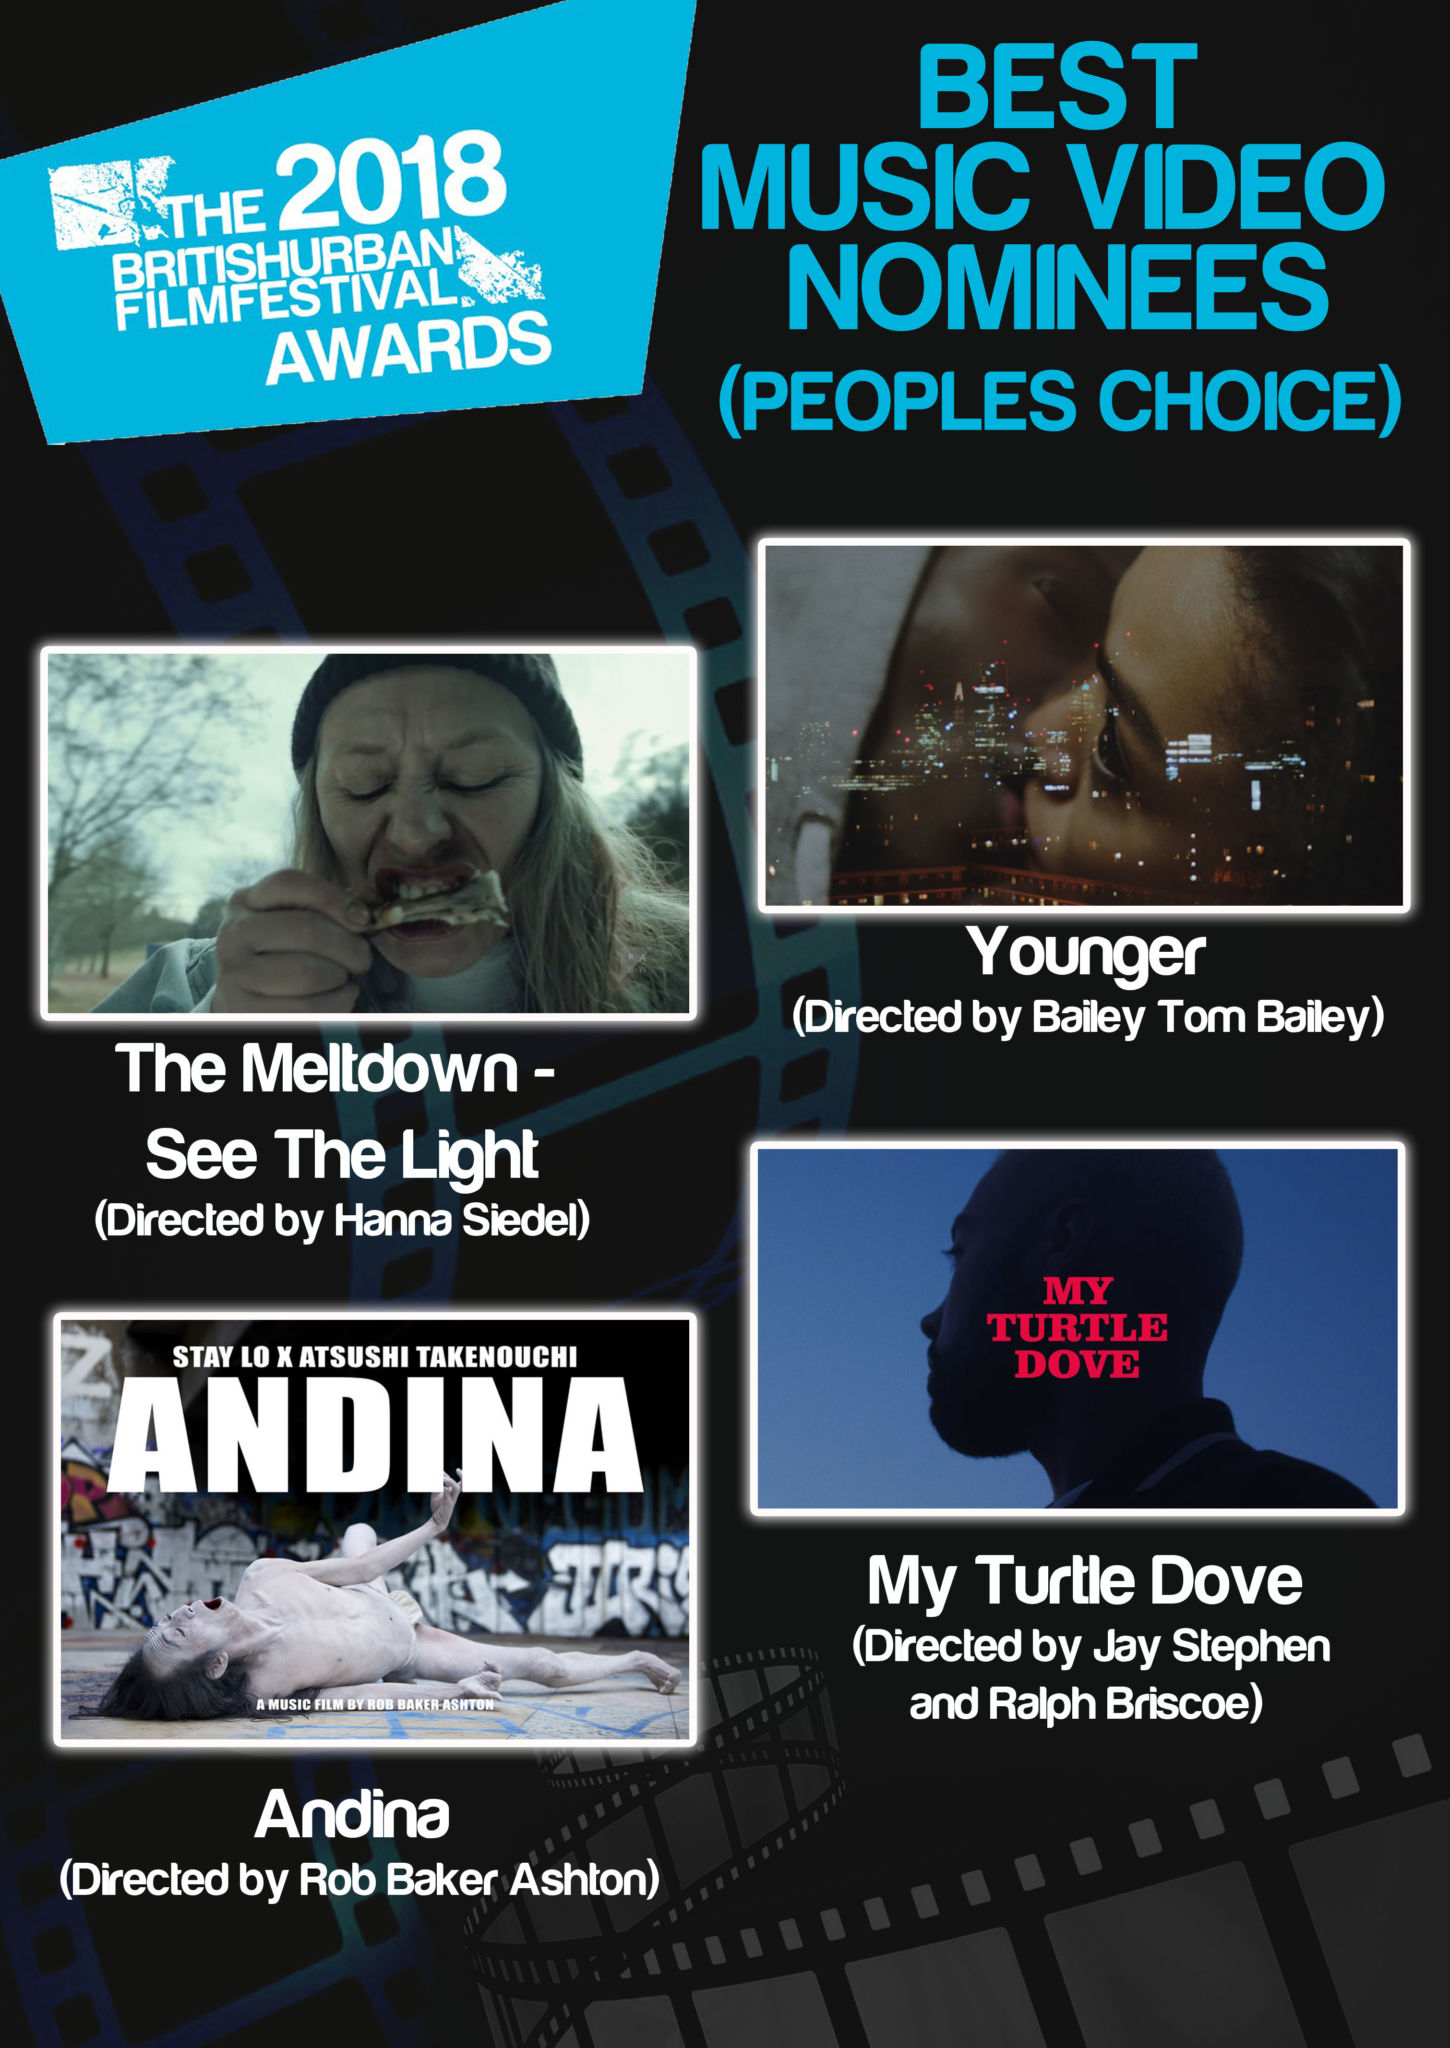 WINNER: YOUNGER